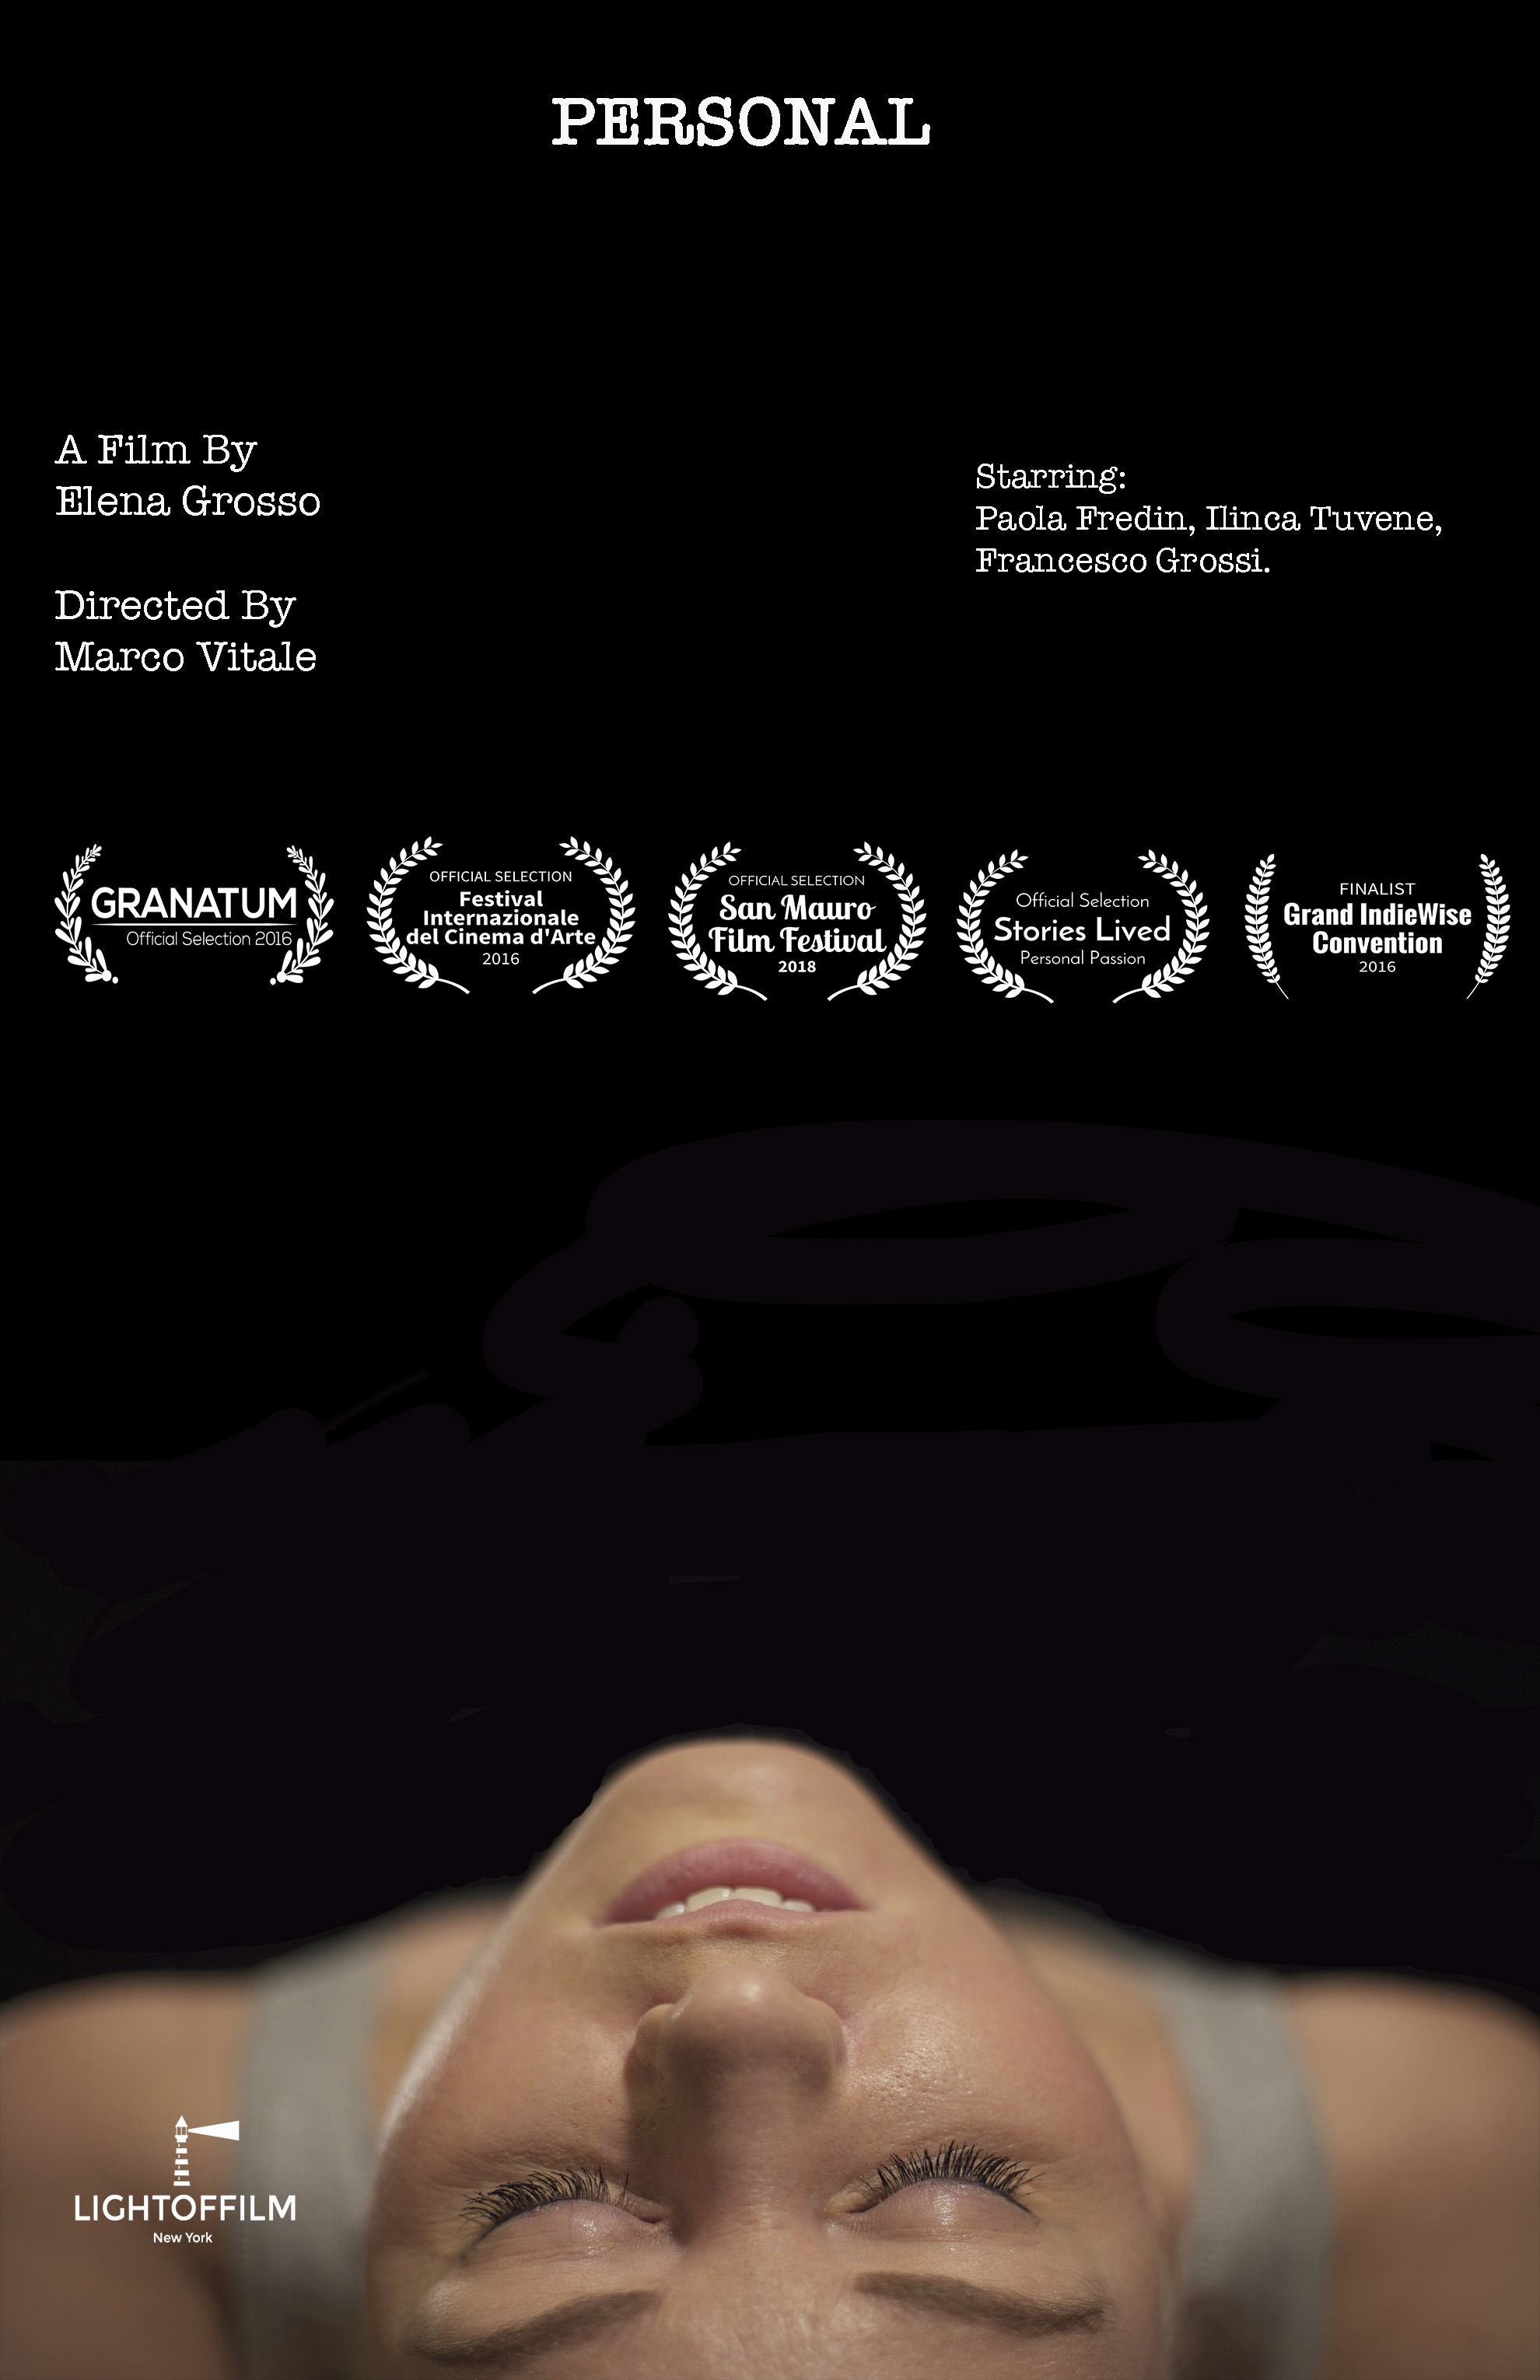 PERSONAL - Three actors, coming from different parts of the world, arrive in New York to pursue their dreams.